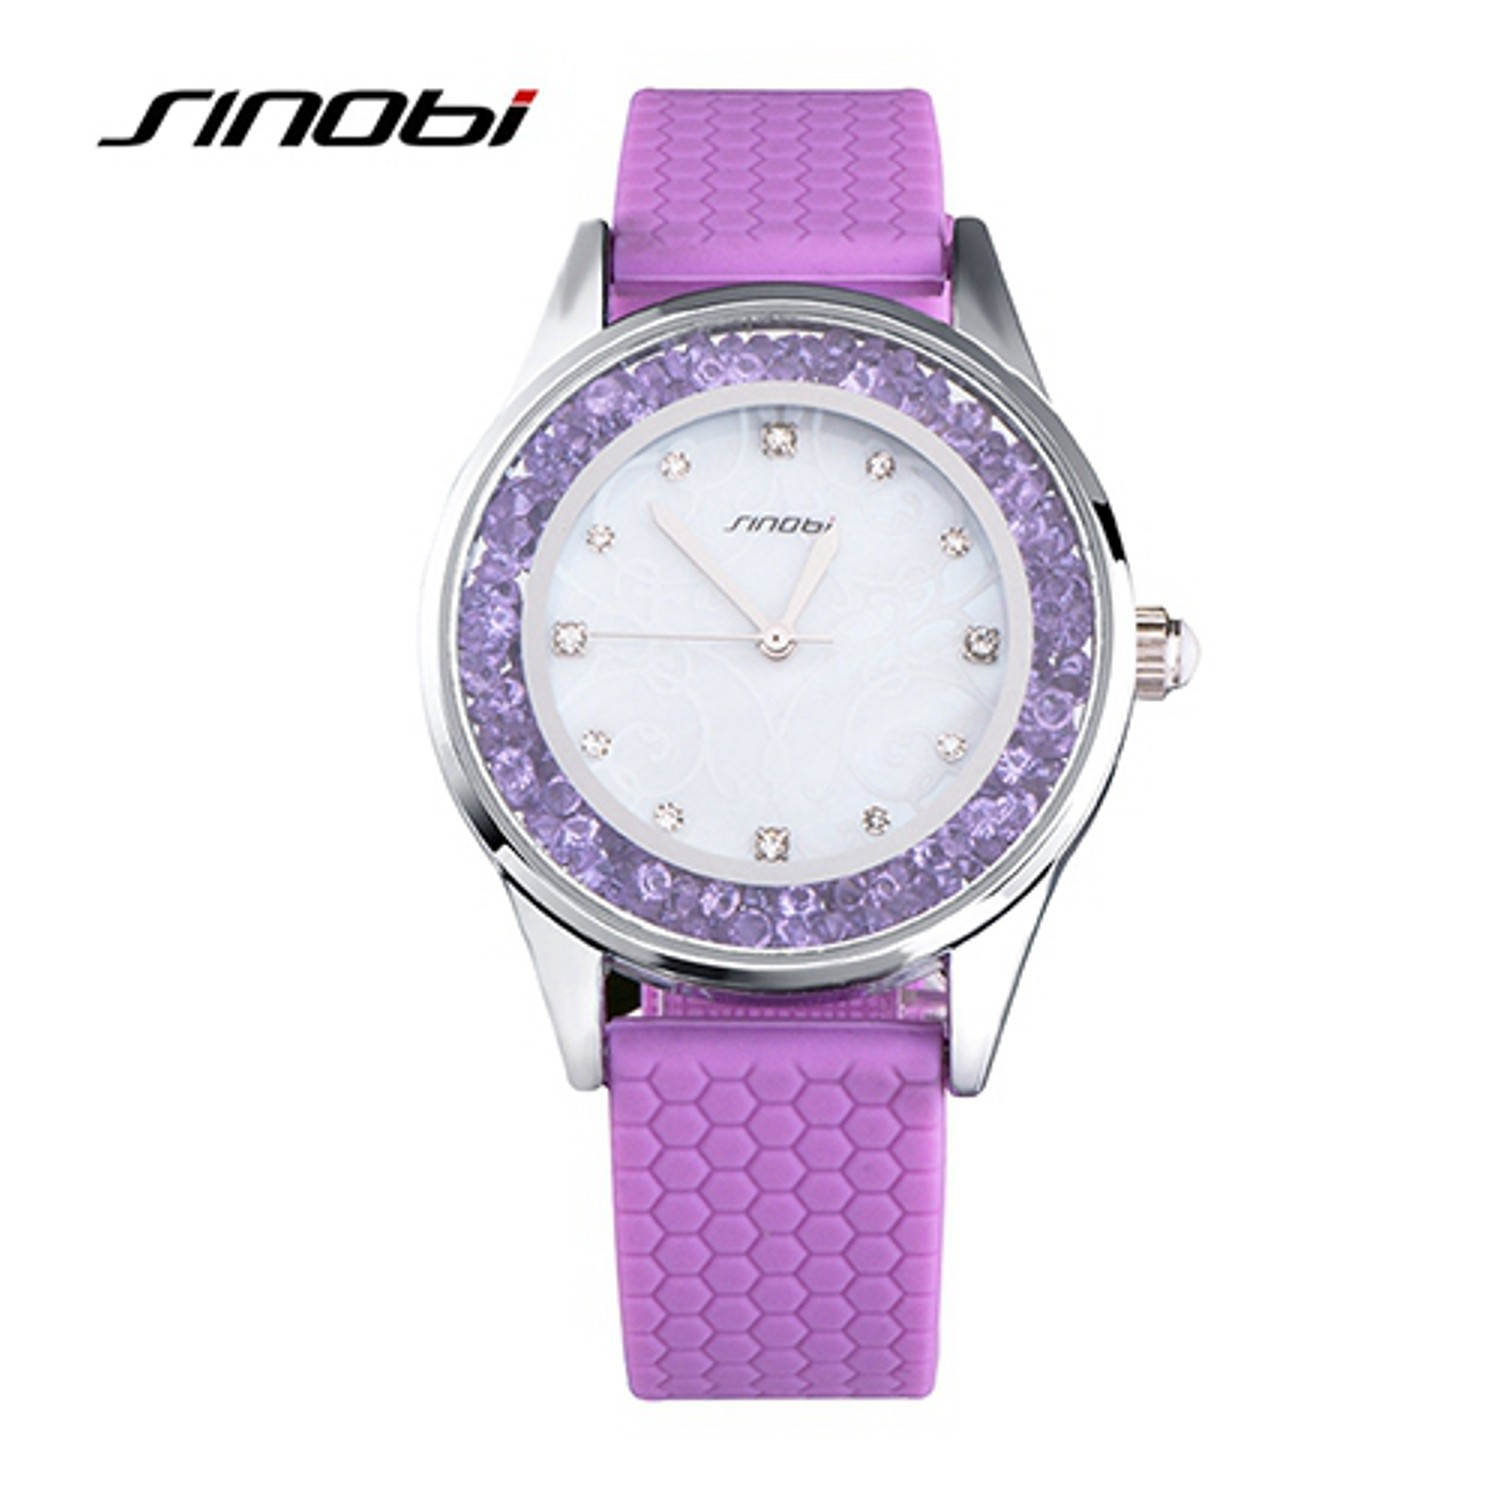 SINOBI-Fashion-Women-s-Diamonds-Wrist-Watches-Silicone-Watchband-Top-Luxury-Brand-Ladies-Geneva-Quartz-Clock_1500x1500_STRETCH_11S9552L03.jpg